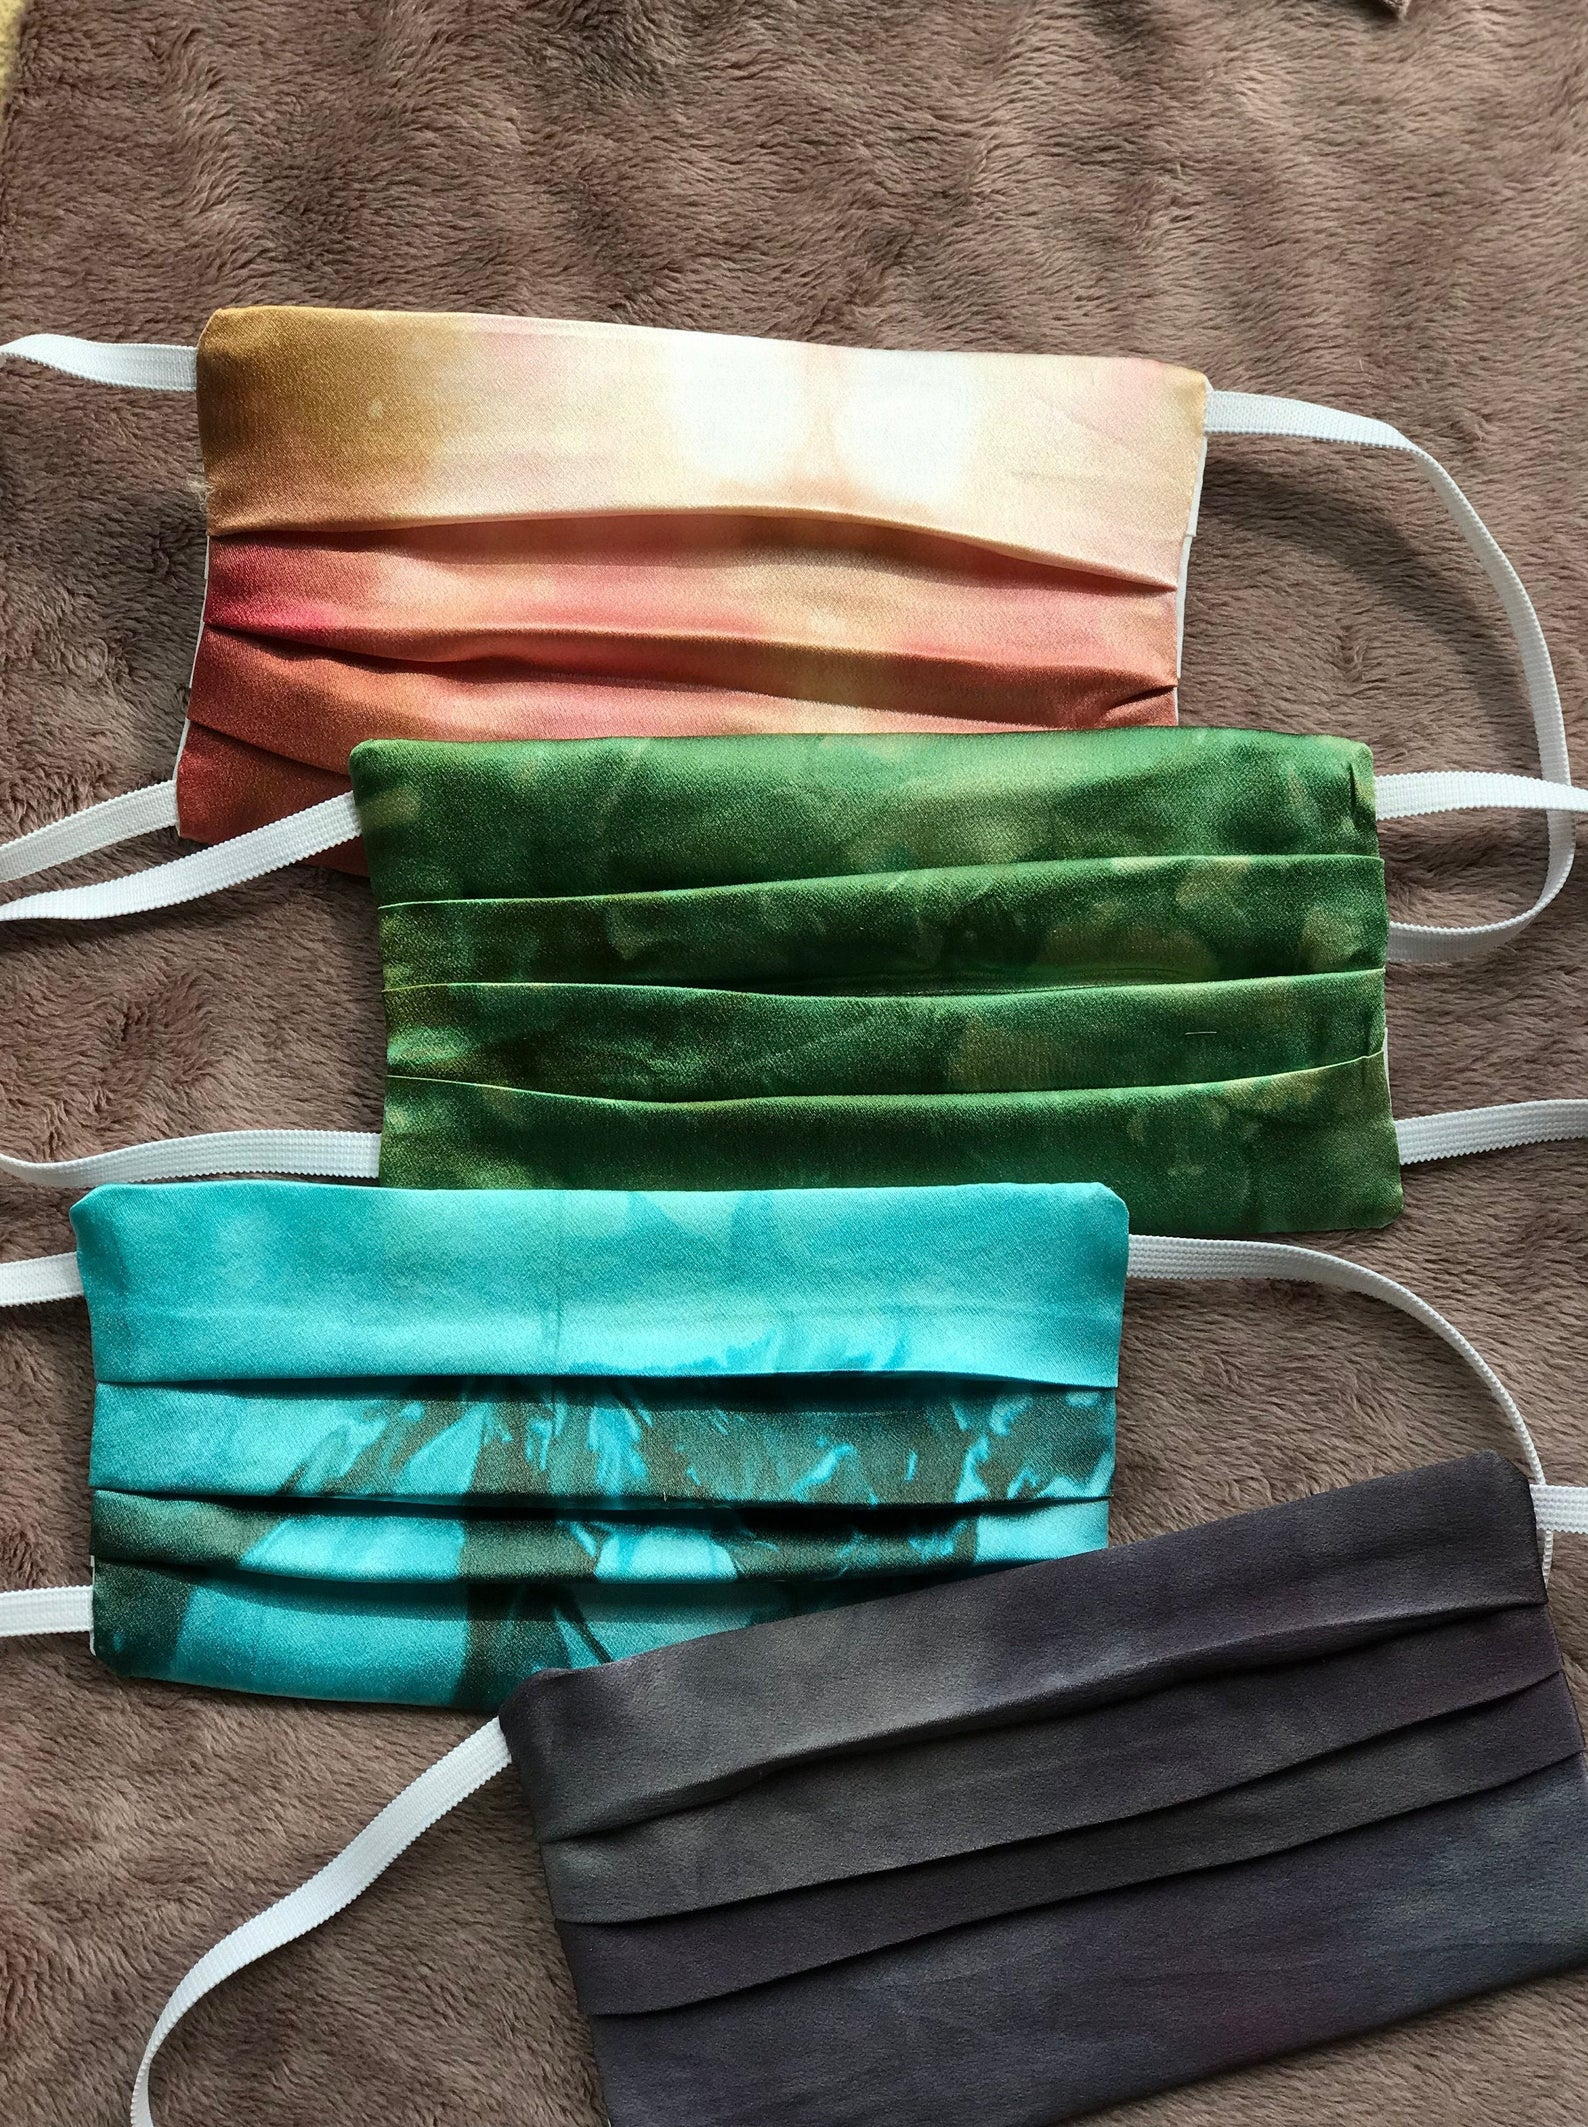 A set of 4 reusable silk face masks. Color options are orange, green, blue and black